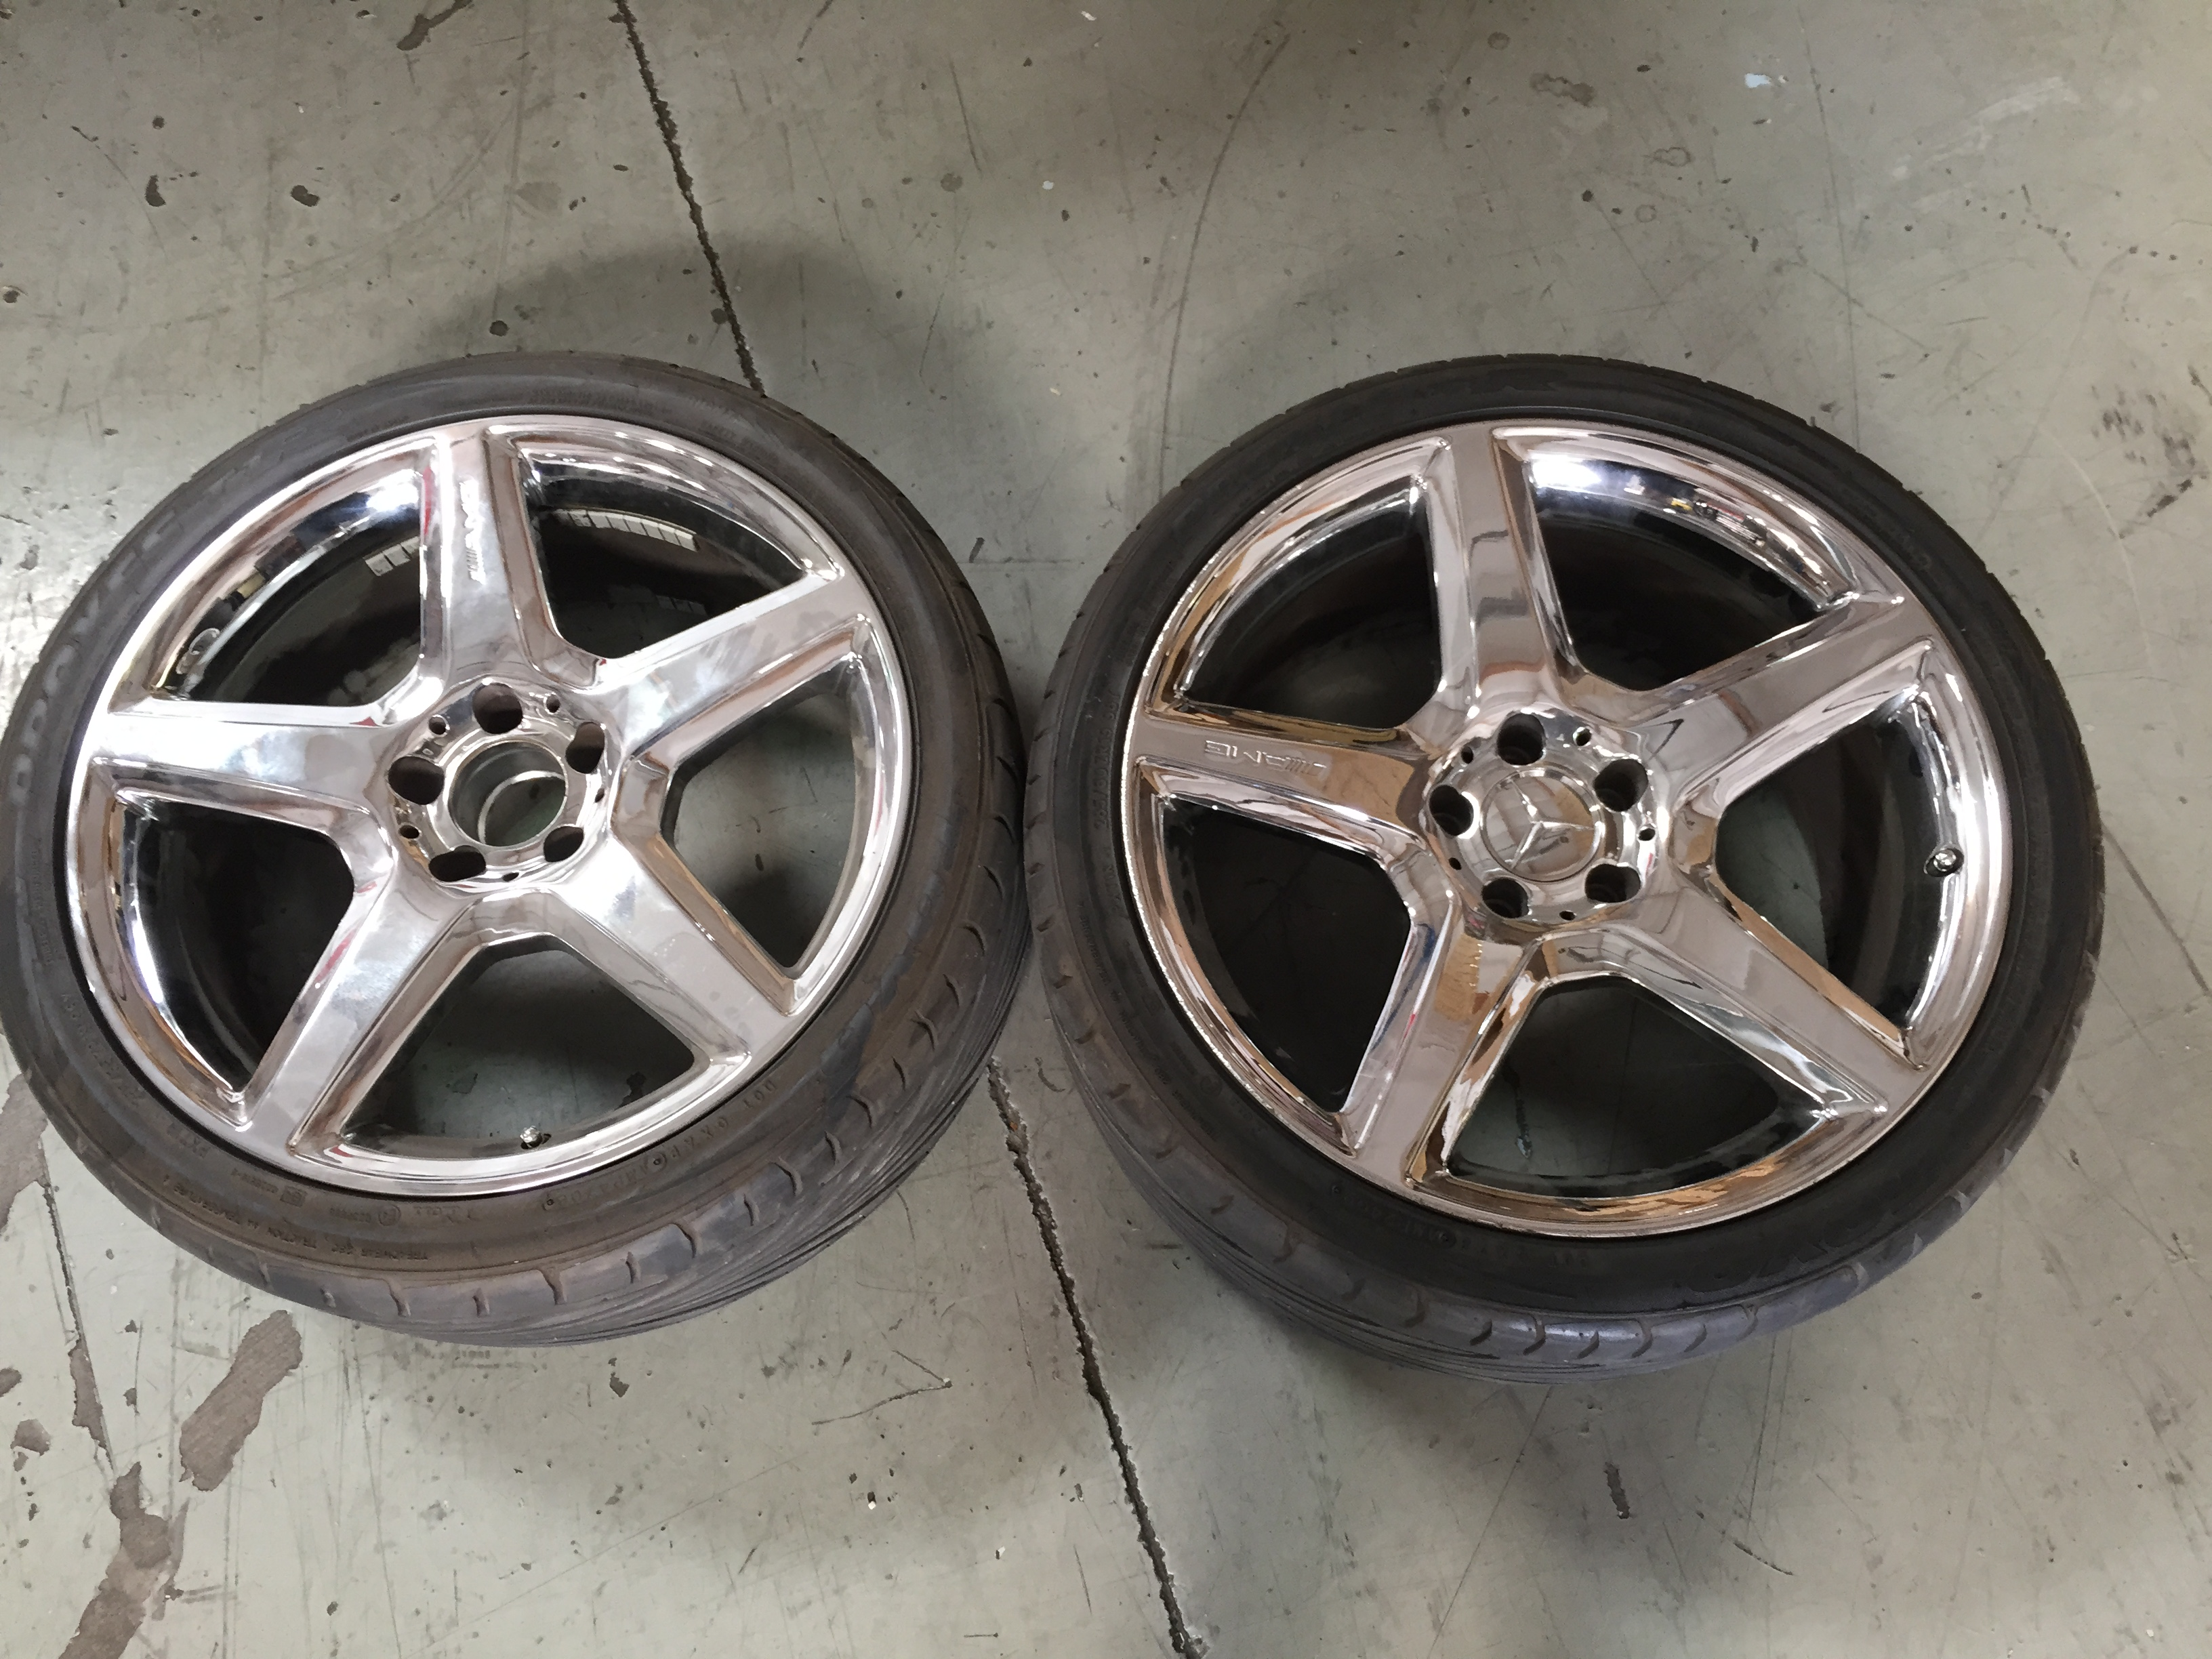 Used Mercedes AMG 5 Star Wheels with Tires CLEARANCE